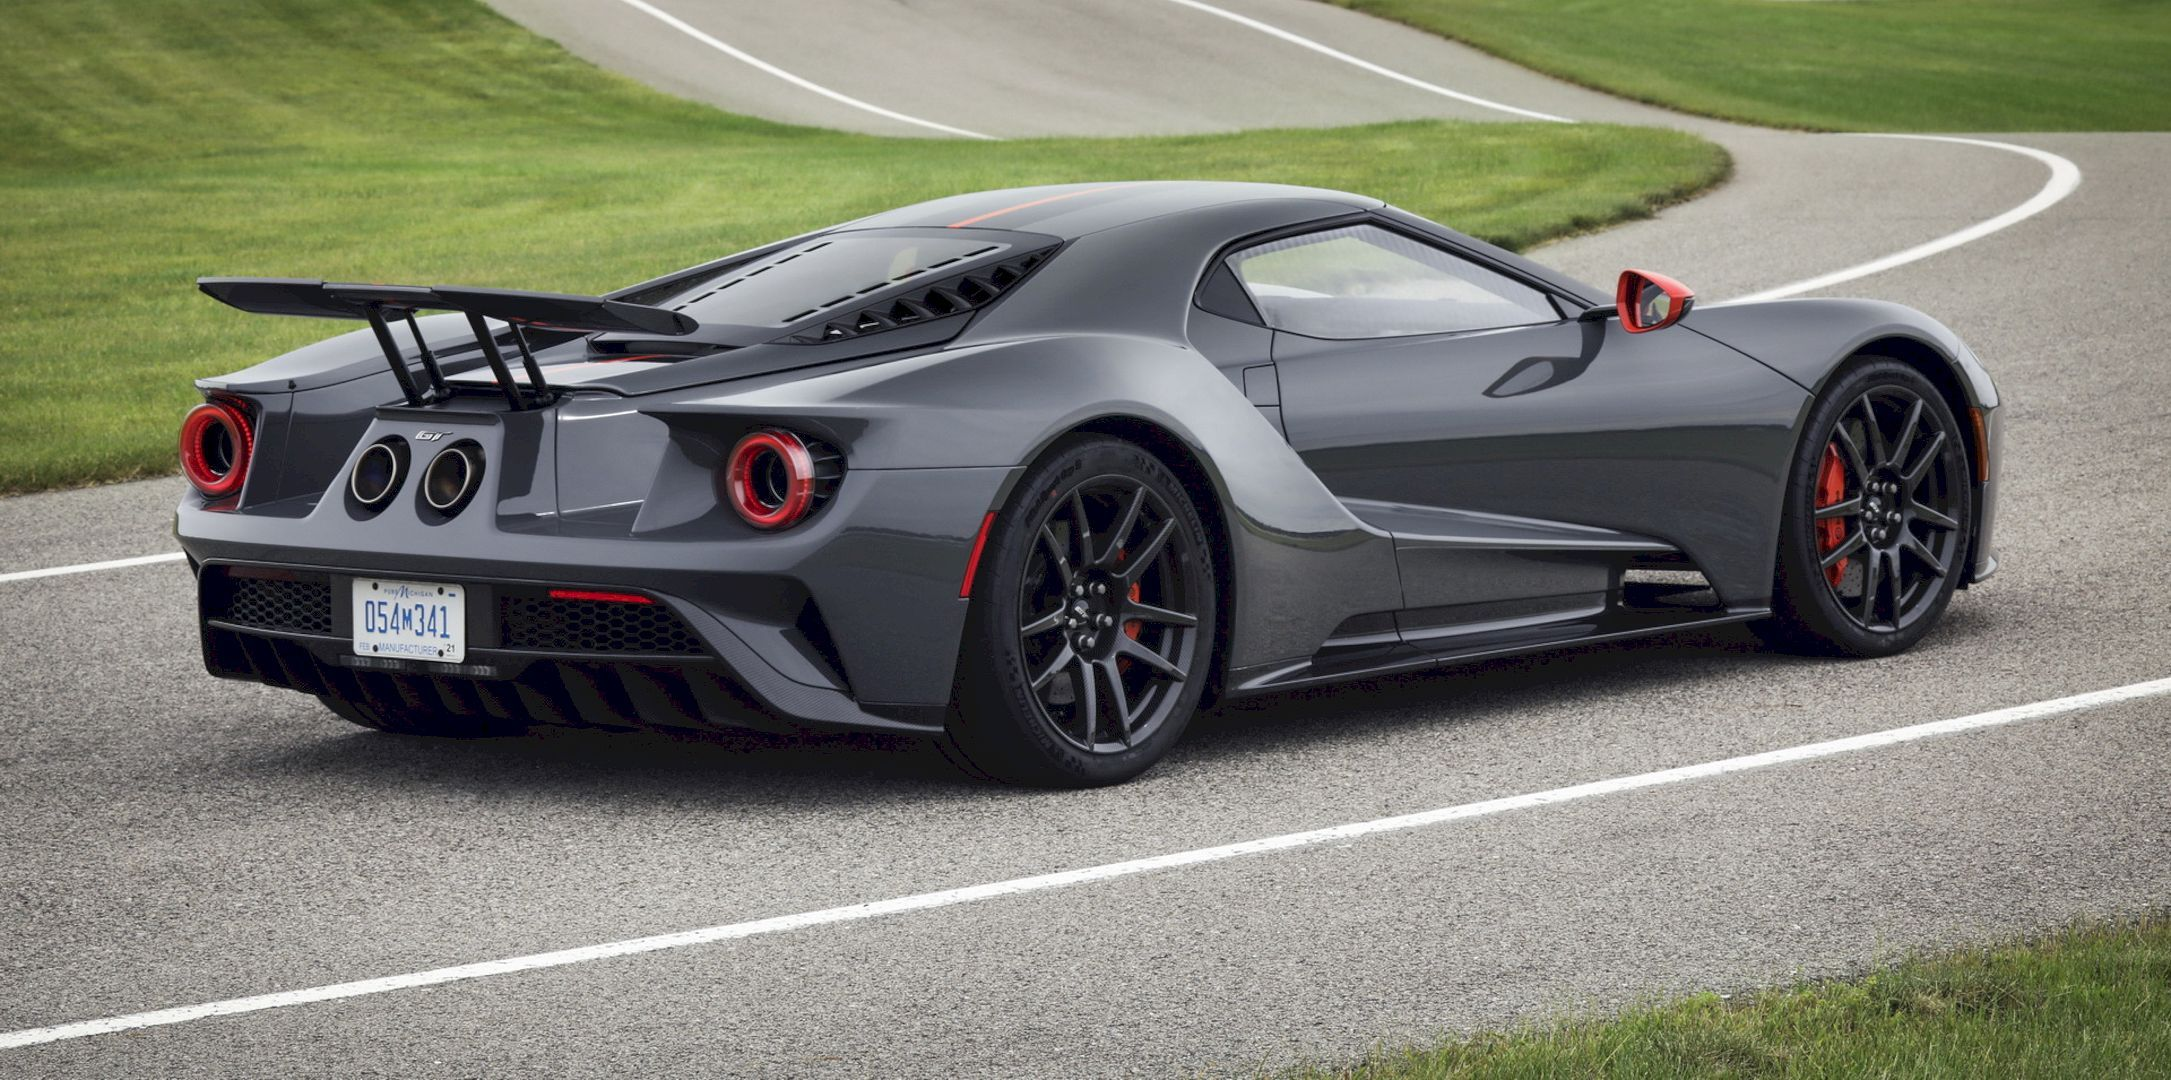 2019 Ford Gt Carbon Series Attacks Track And Drive Home Ford